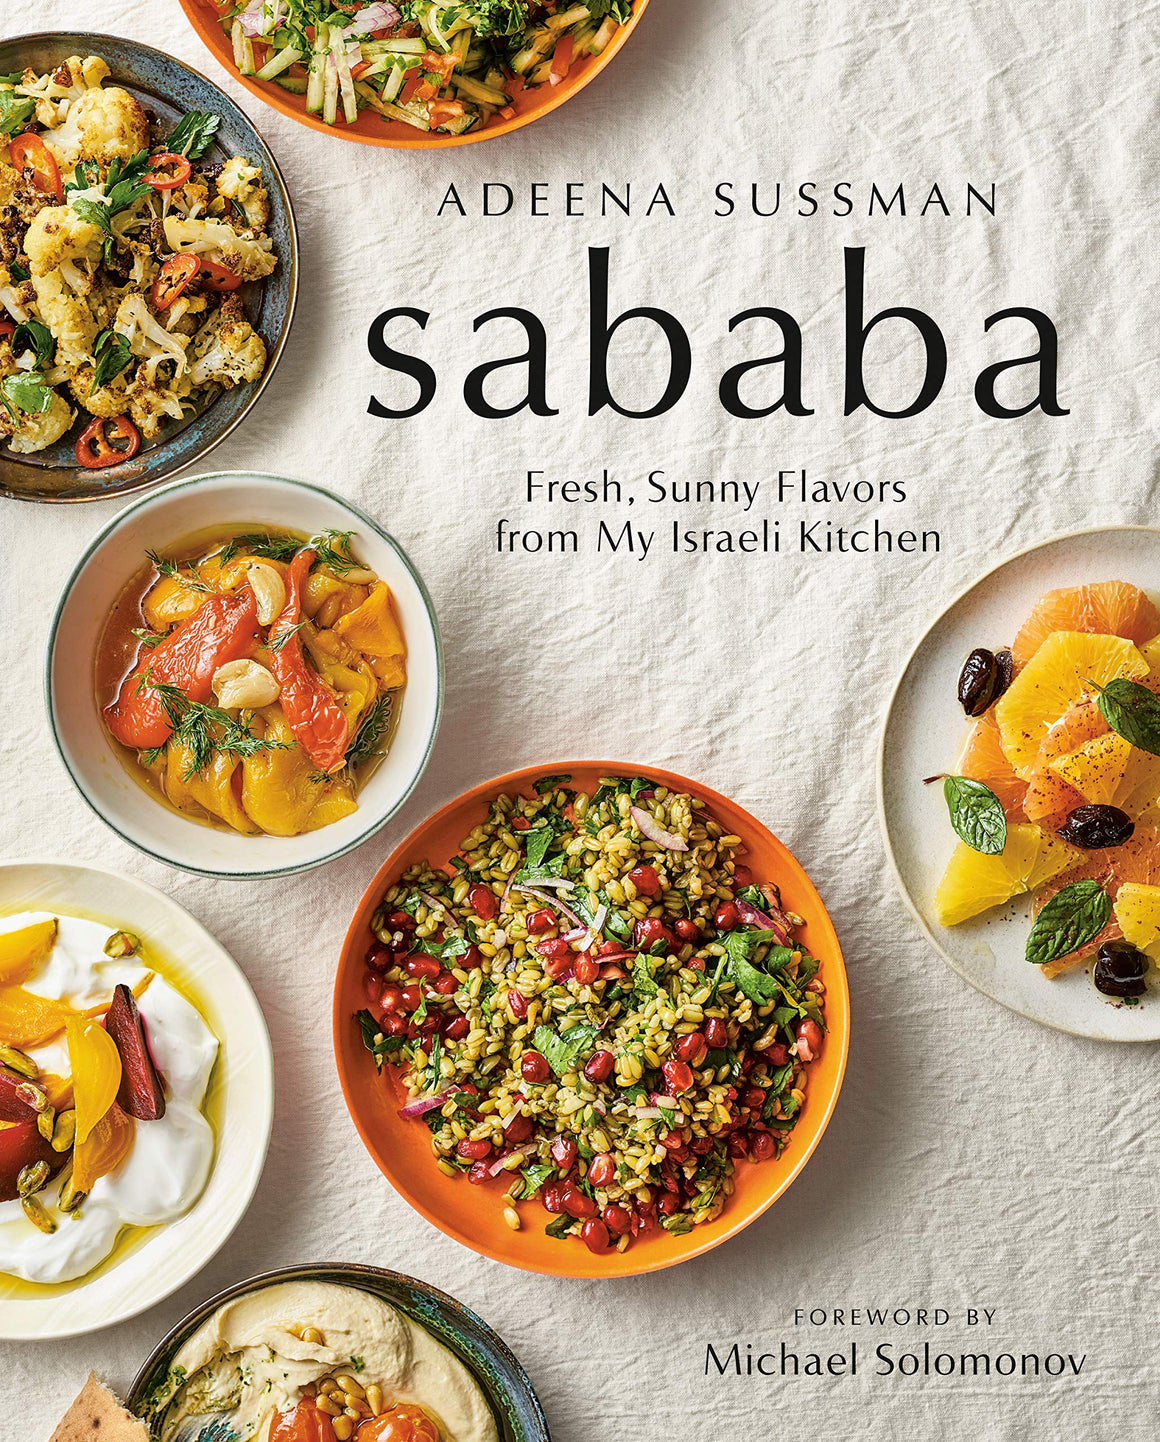 FREE AUTHOR EVENT! Sun. Sept. 8 • Adeena Sussman • Sababa: Fresh, Sunny Flavors From My Israeli Kitchen • 3:00-4:00 p.m.